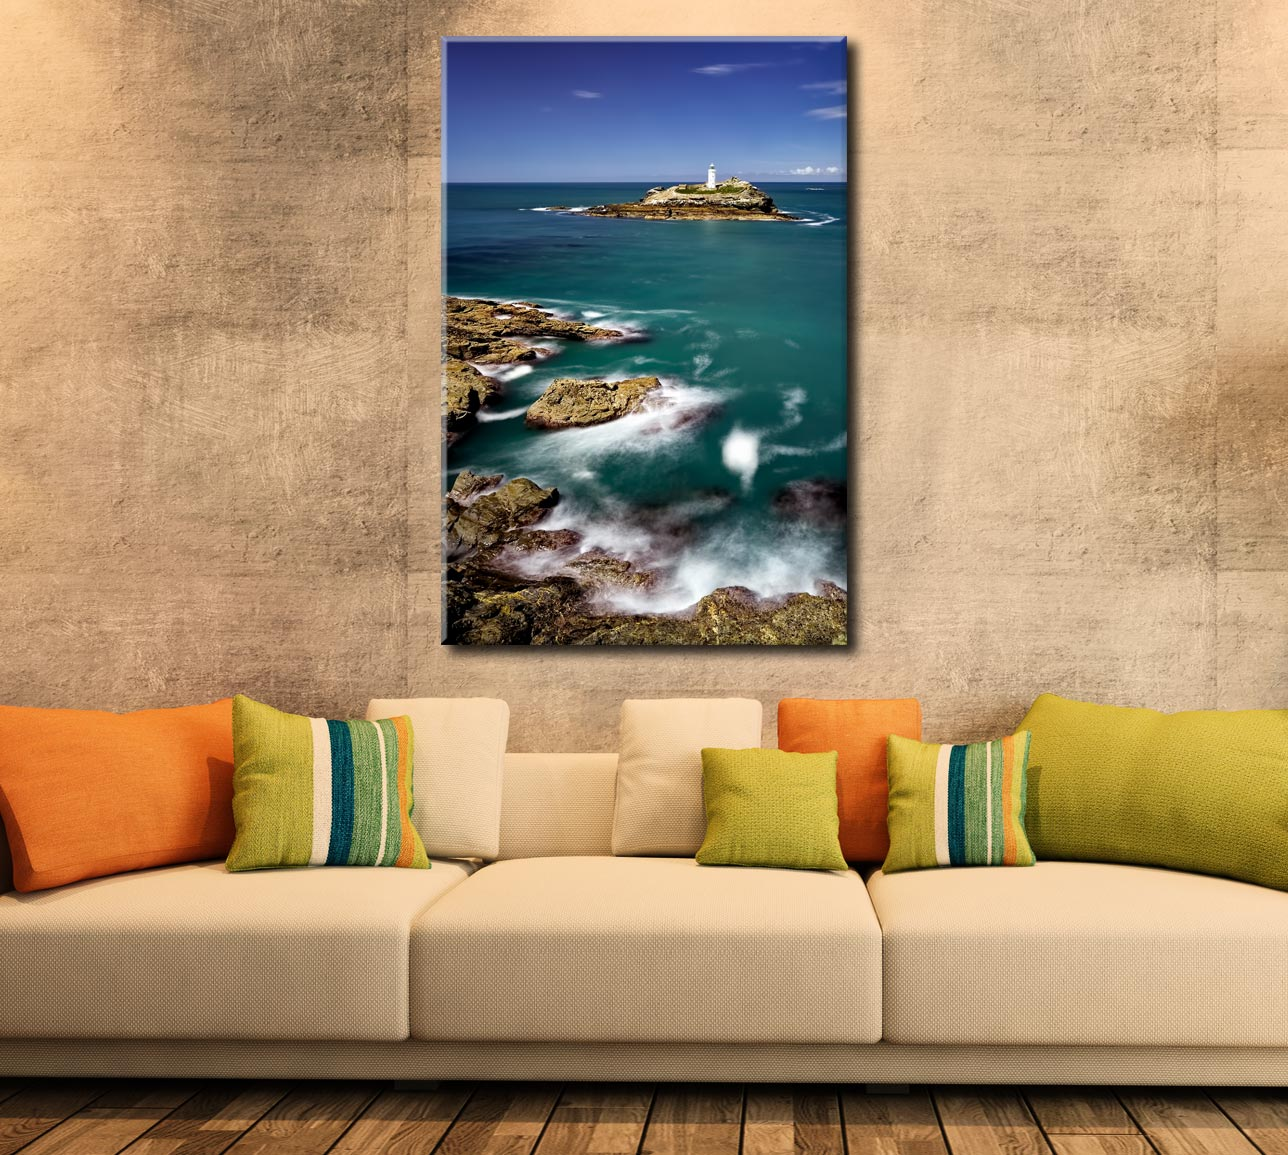 Green Ocean at Godrevy Point - Cornwall Canvas on Wall